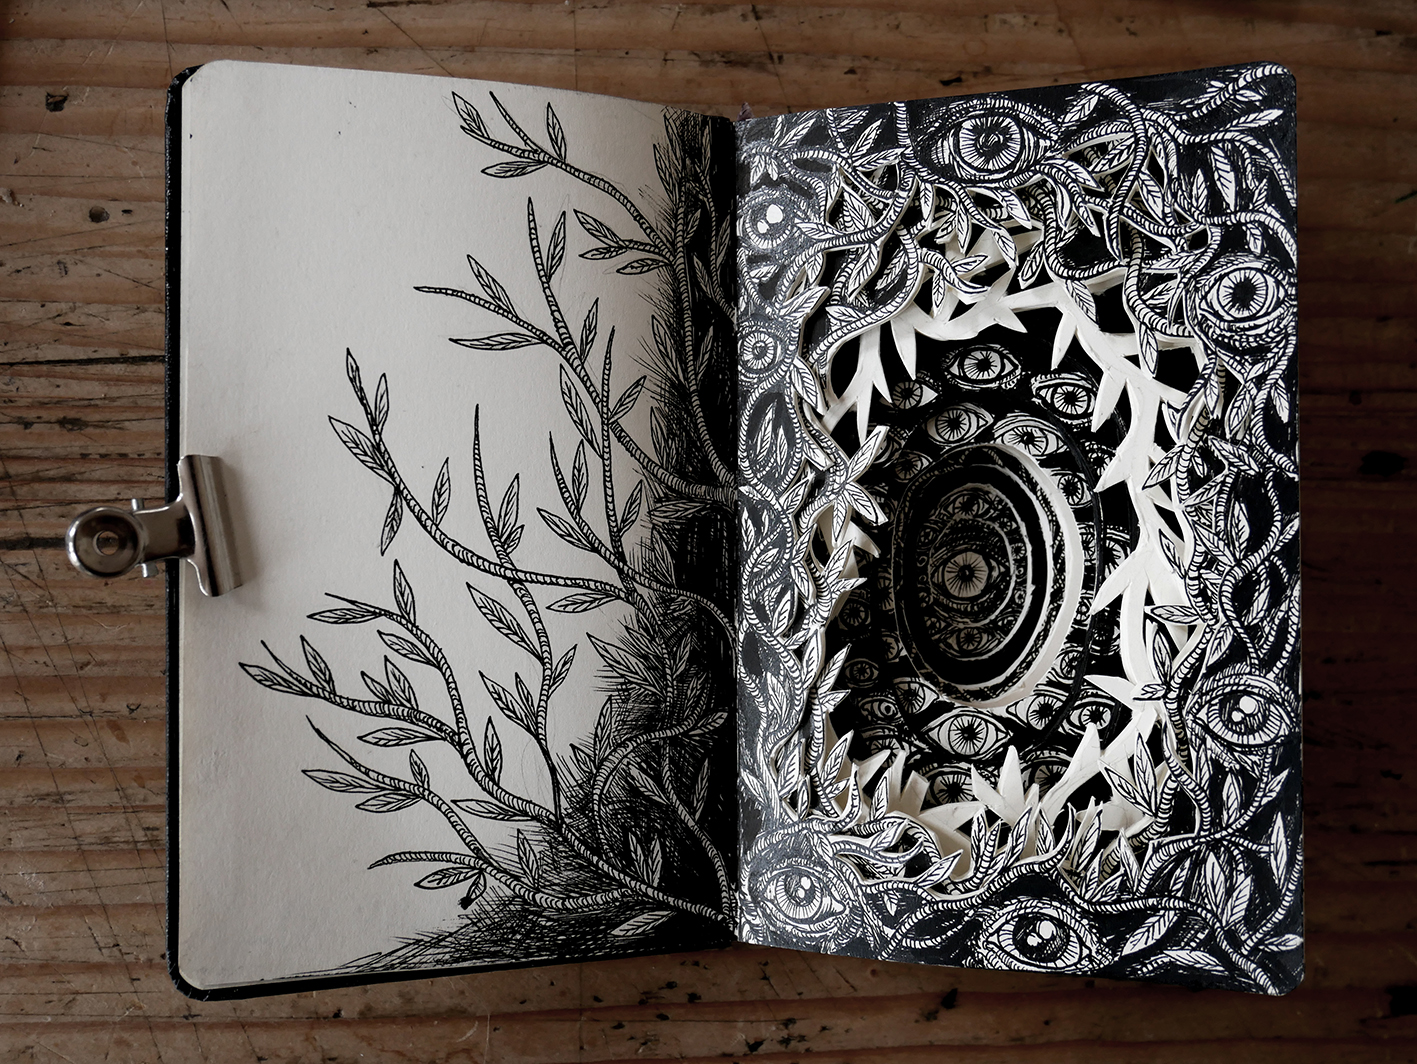 Altered book - 2019